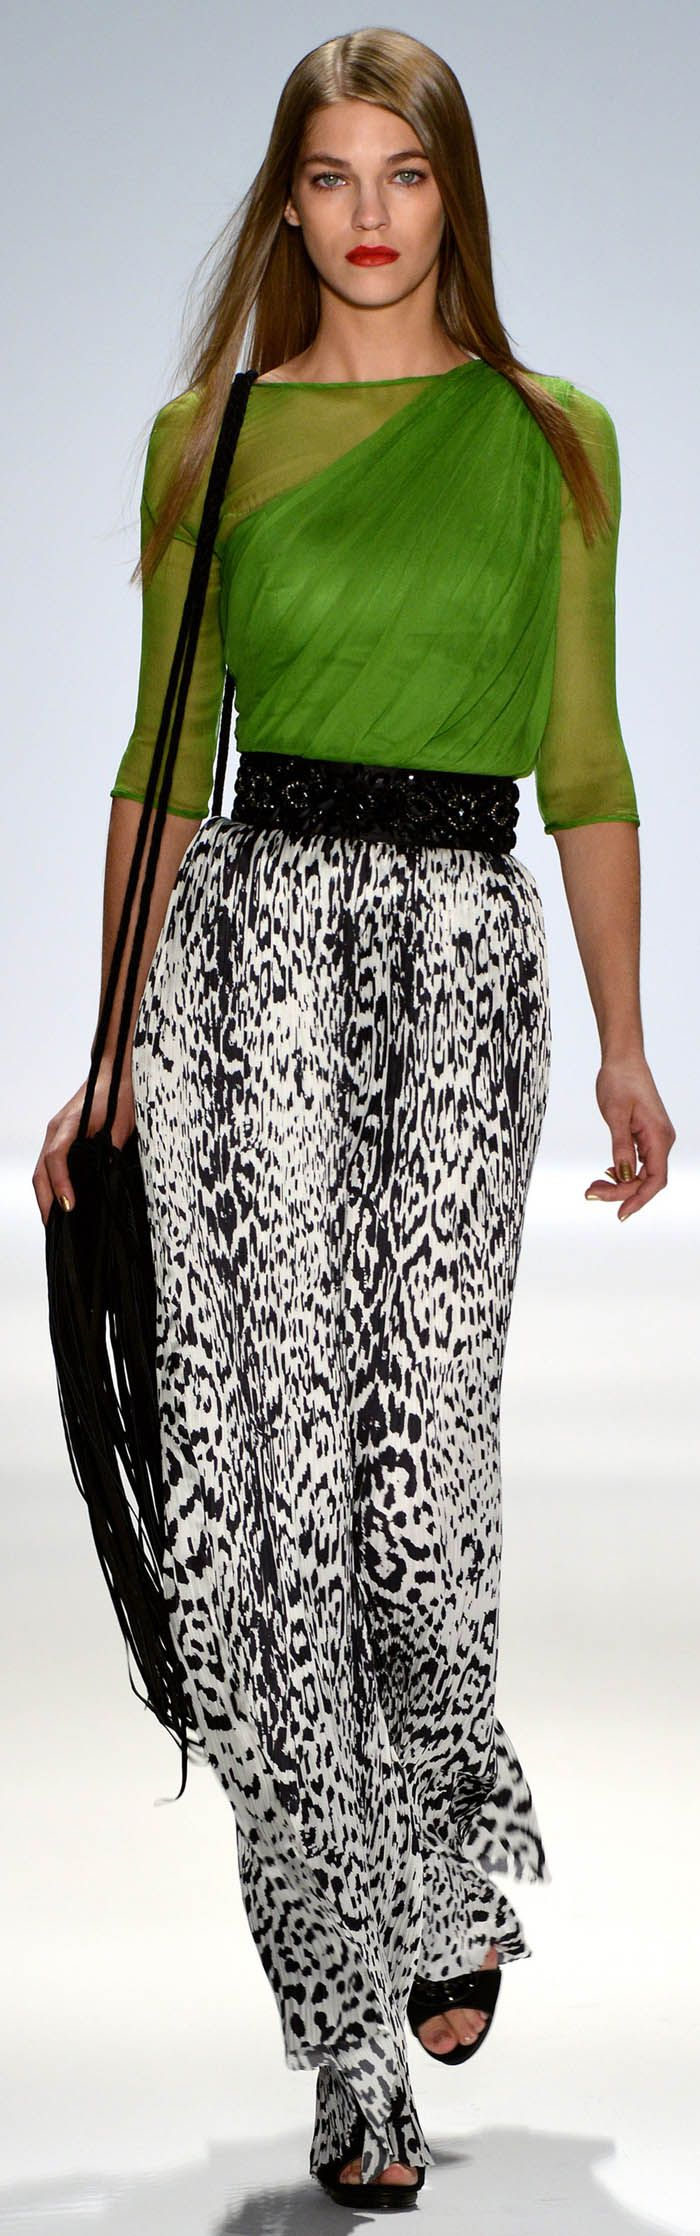 My Favorite Runway Fashions from Carlos Miele Spring Summer 2013 Ready-To-Wear Collection